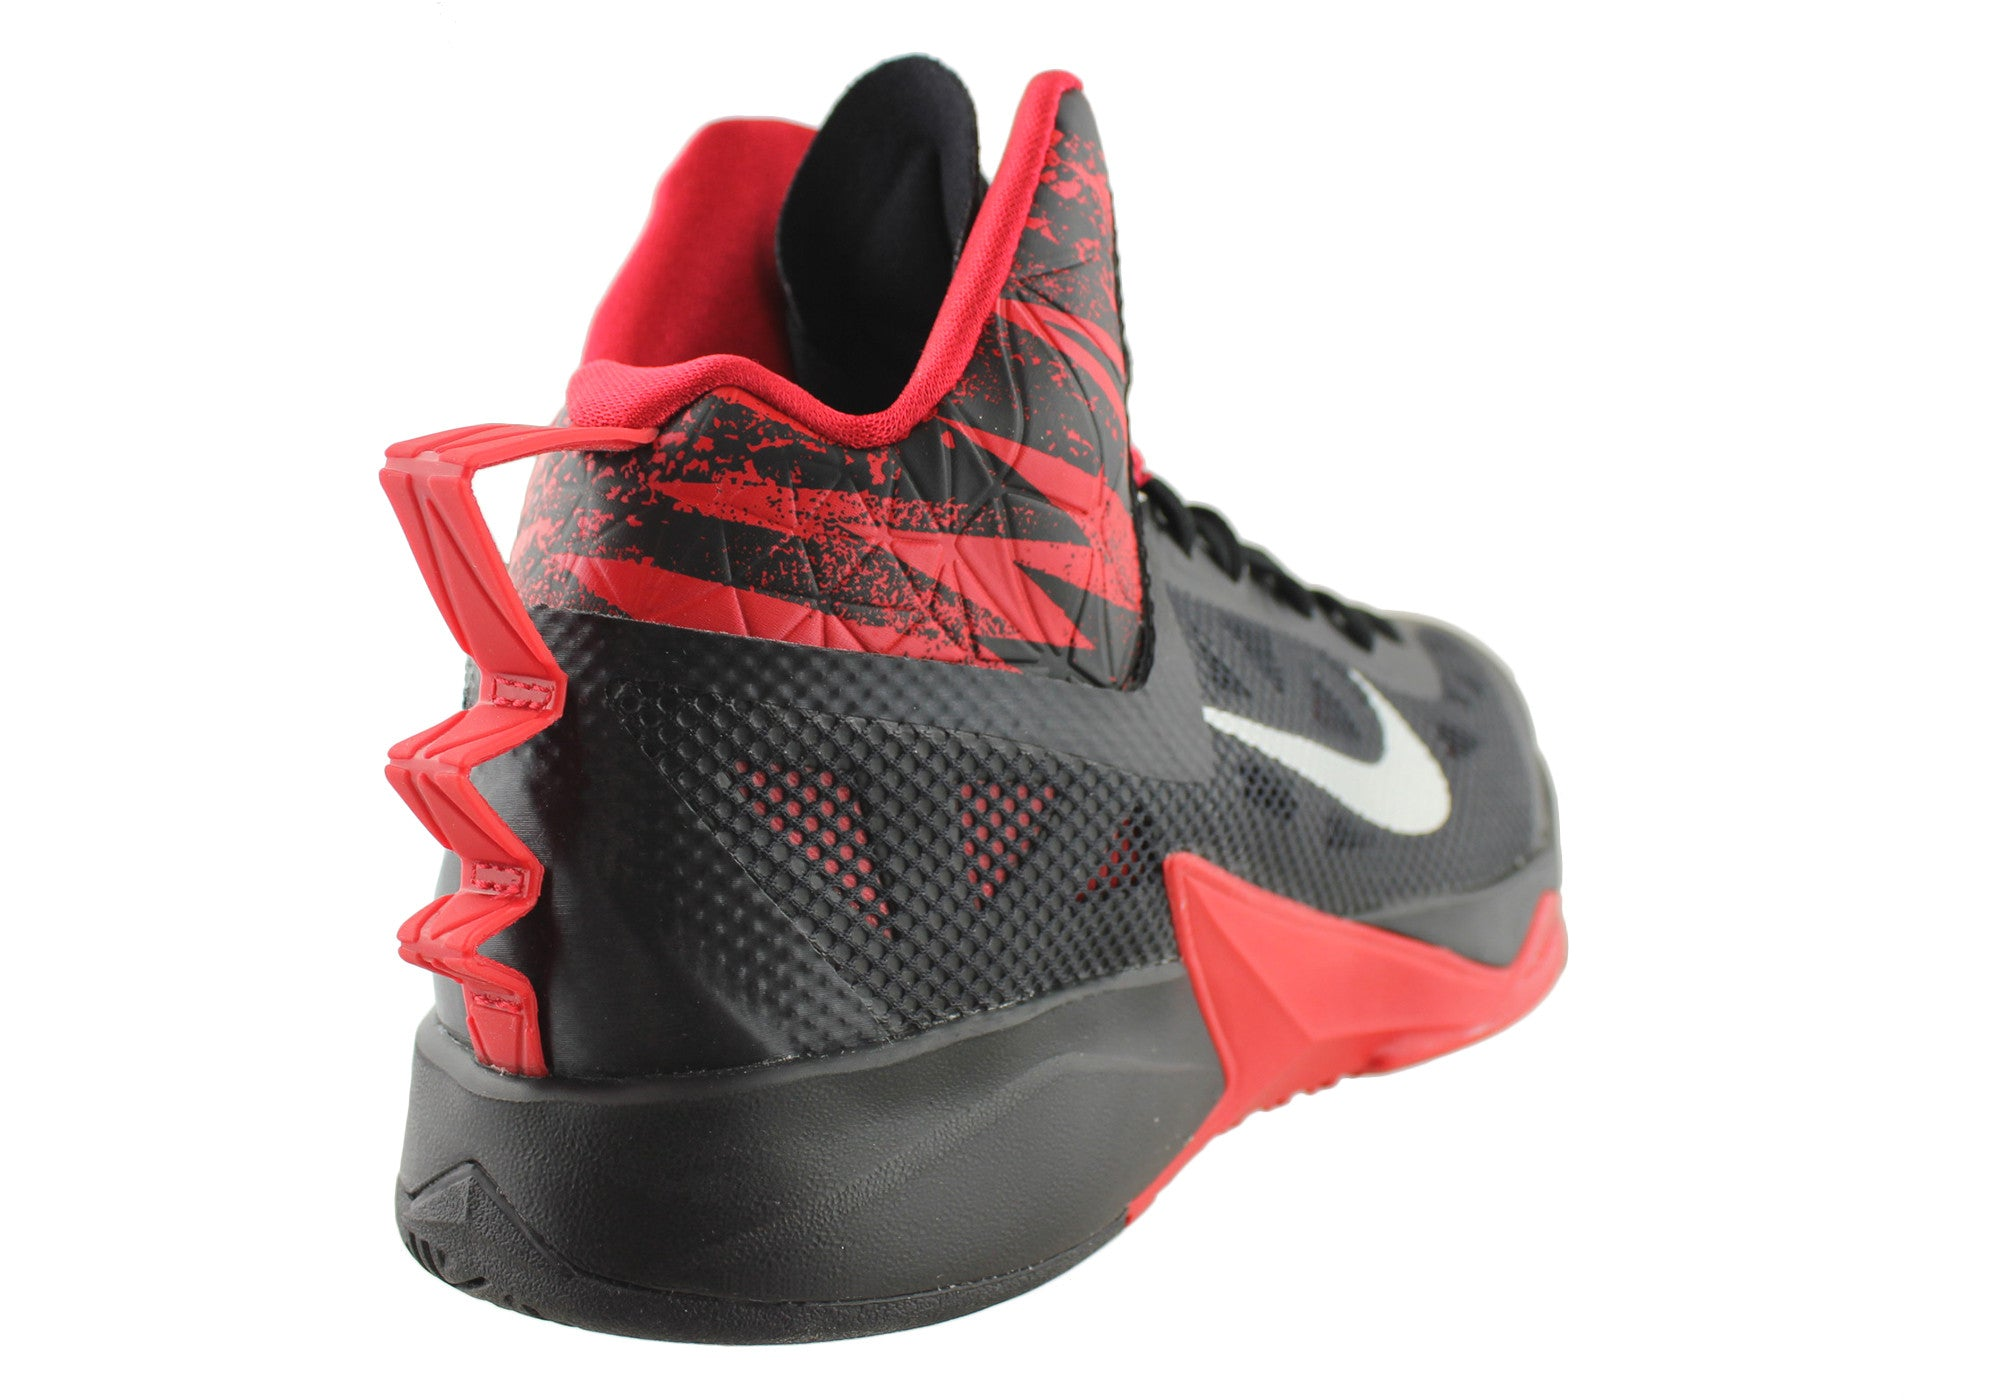 Nike Zoom Hyperfuse 2013 Mens High Tops Shoes Brand